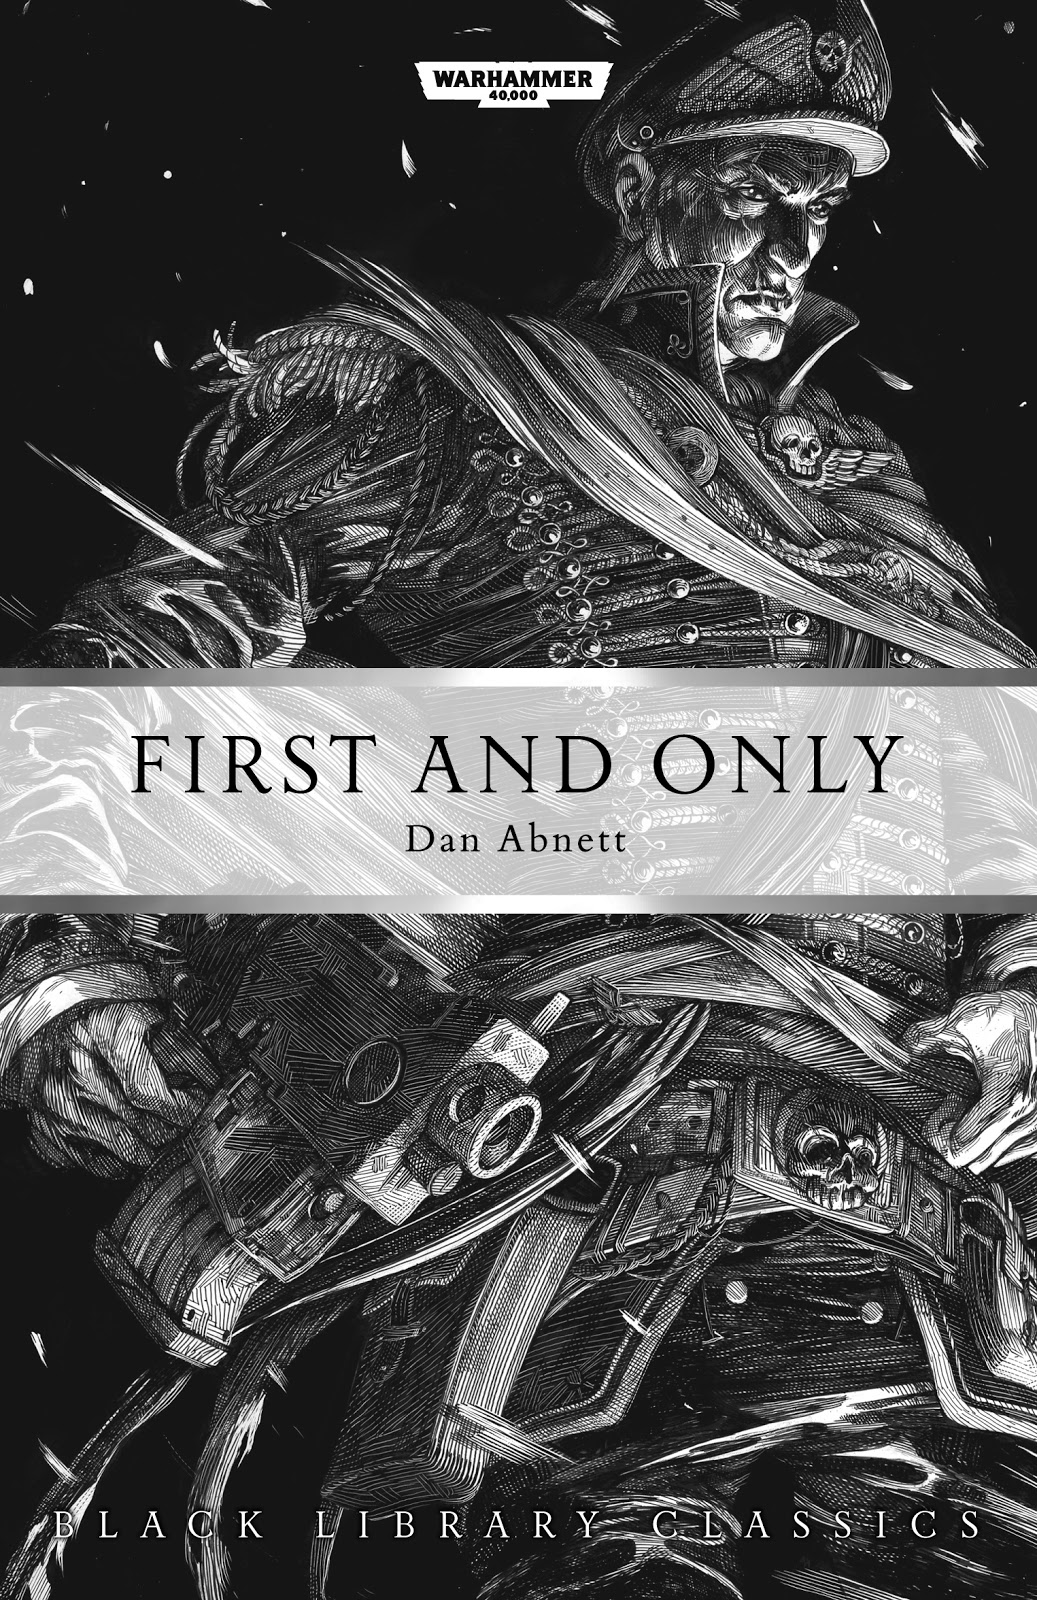 Freeic Book Day (or, May The Fourth Be With You)